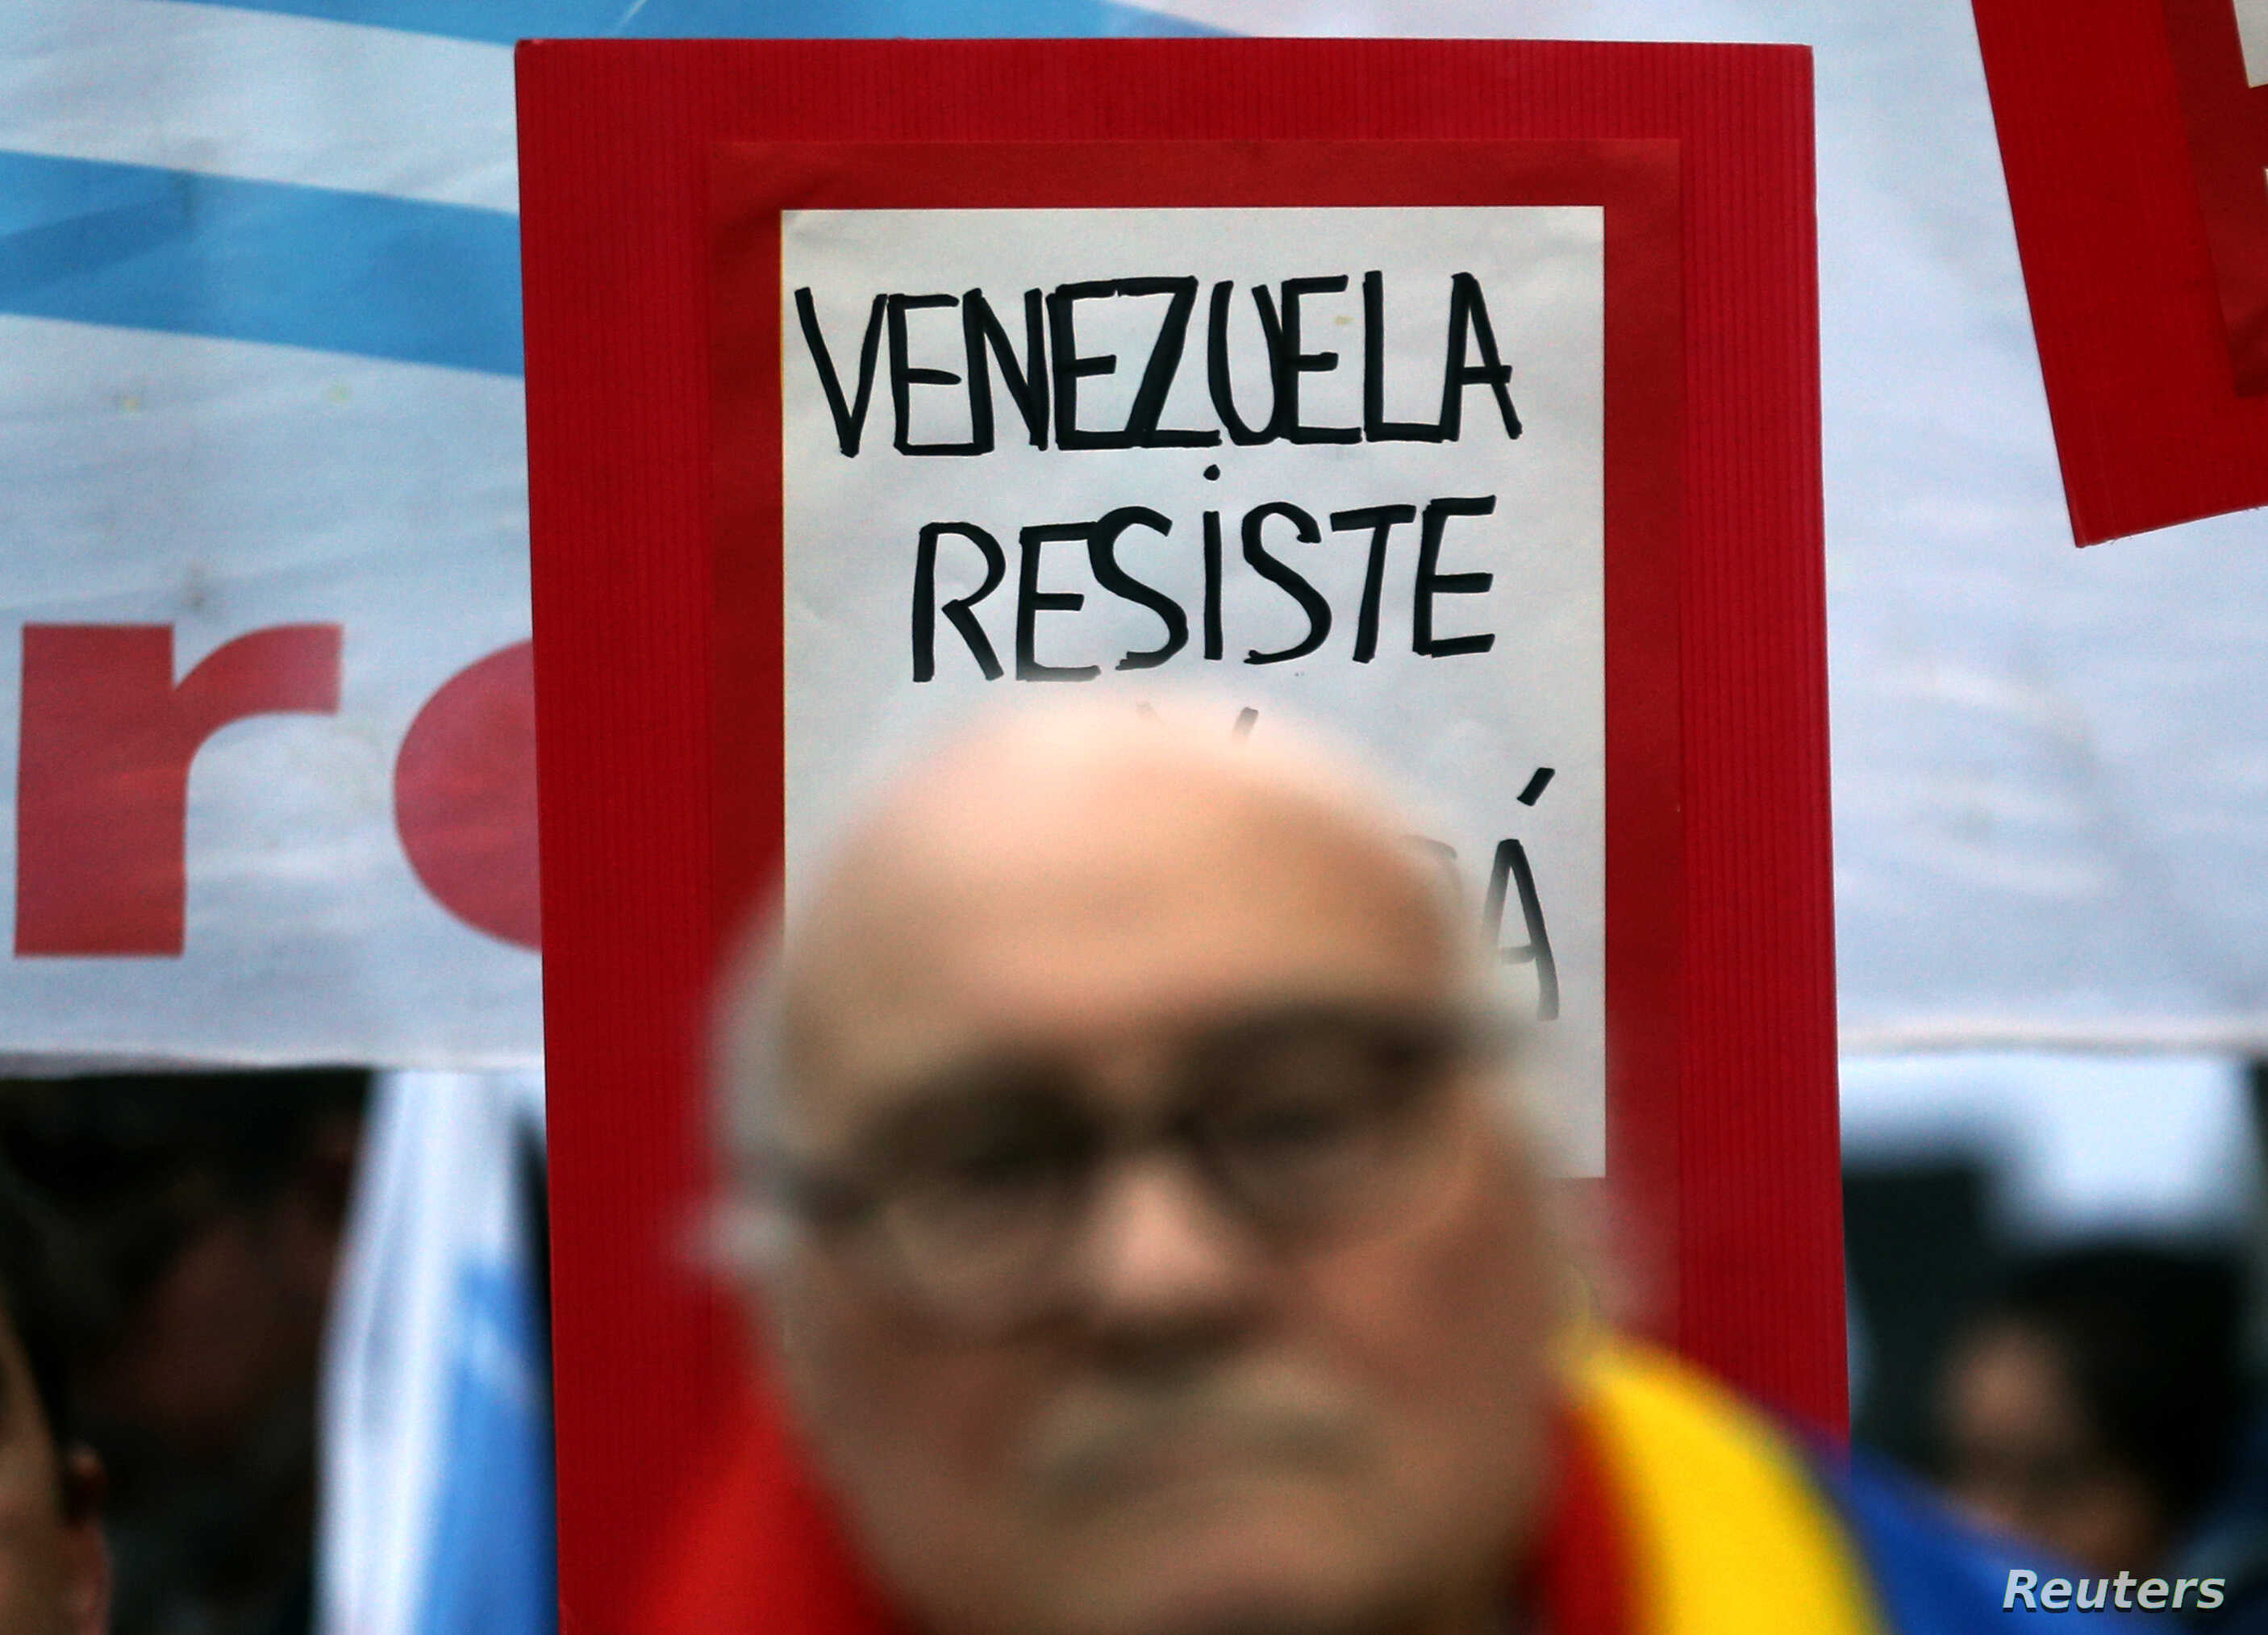 """A sign that reads """"Venezuela, resist"""" is seen behind former Argentine leftist guerrilla leader Roberto Perdia during a protest in support of Venezuela's government in Buenos Aires, Argentina, Aug. 17, 2017."""